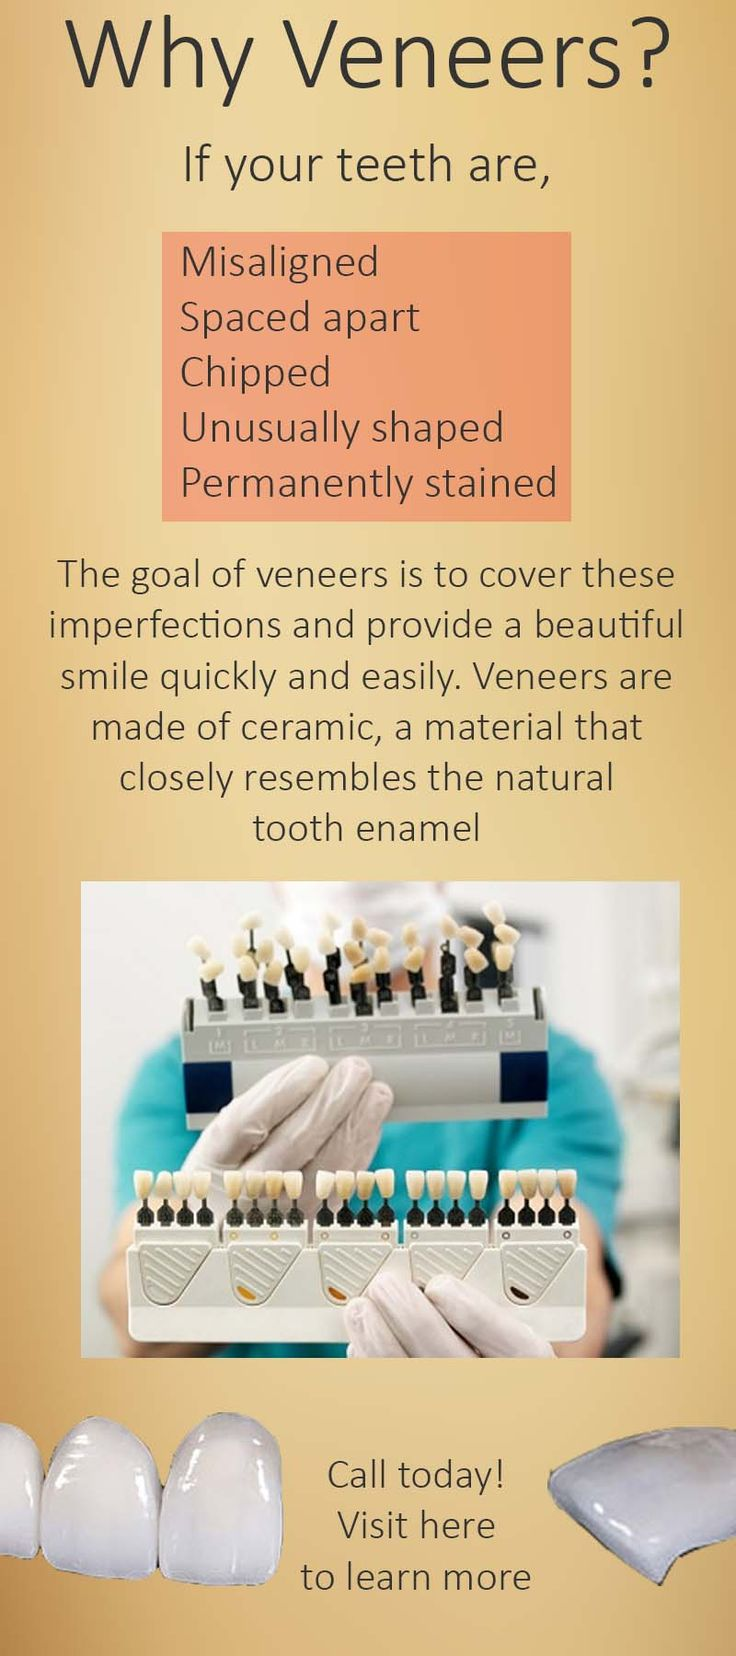 Dr. Stephen Matarazzo of Quincy, MA offers dental veneers for patients searching for dental services near me. Call 855-315-7155 #veneers #dental #dentistry #dentist #oral #health #Quincy #MA #02169